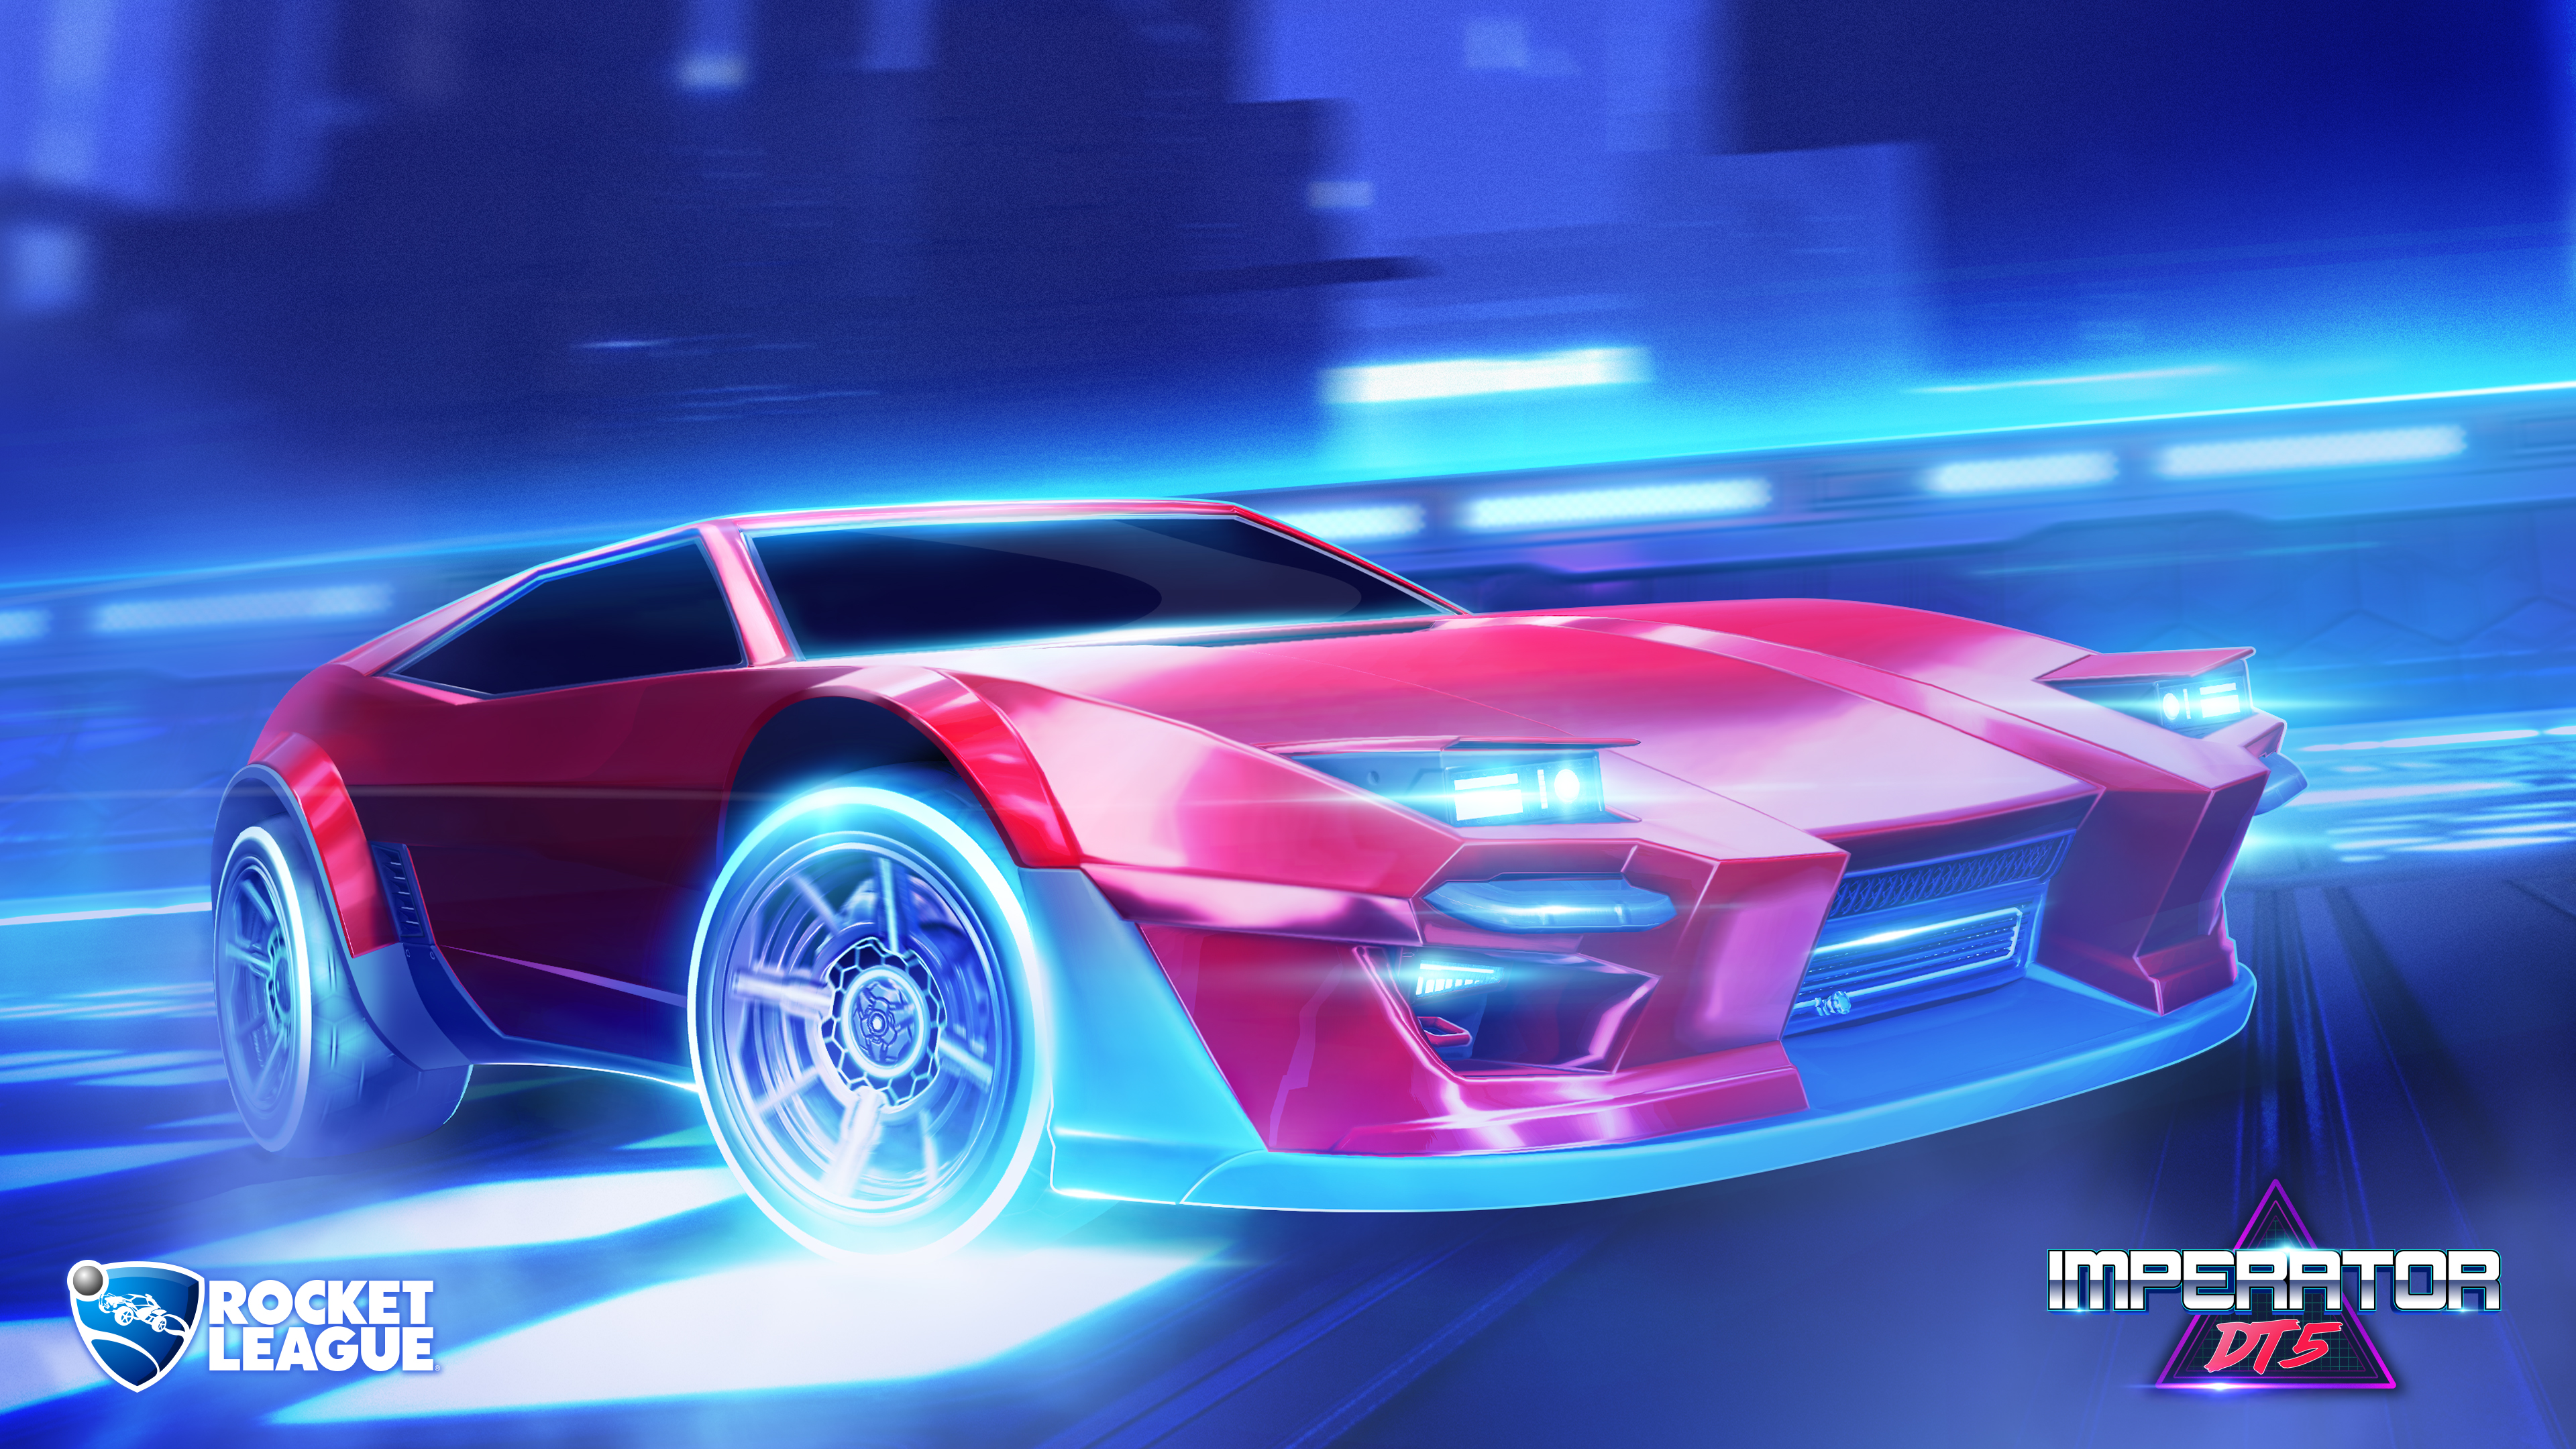 The Imperator Dt5 Rocket League 4k Ultra Fondo De Pantalla